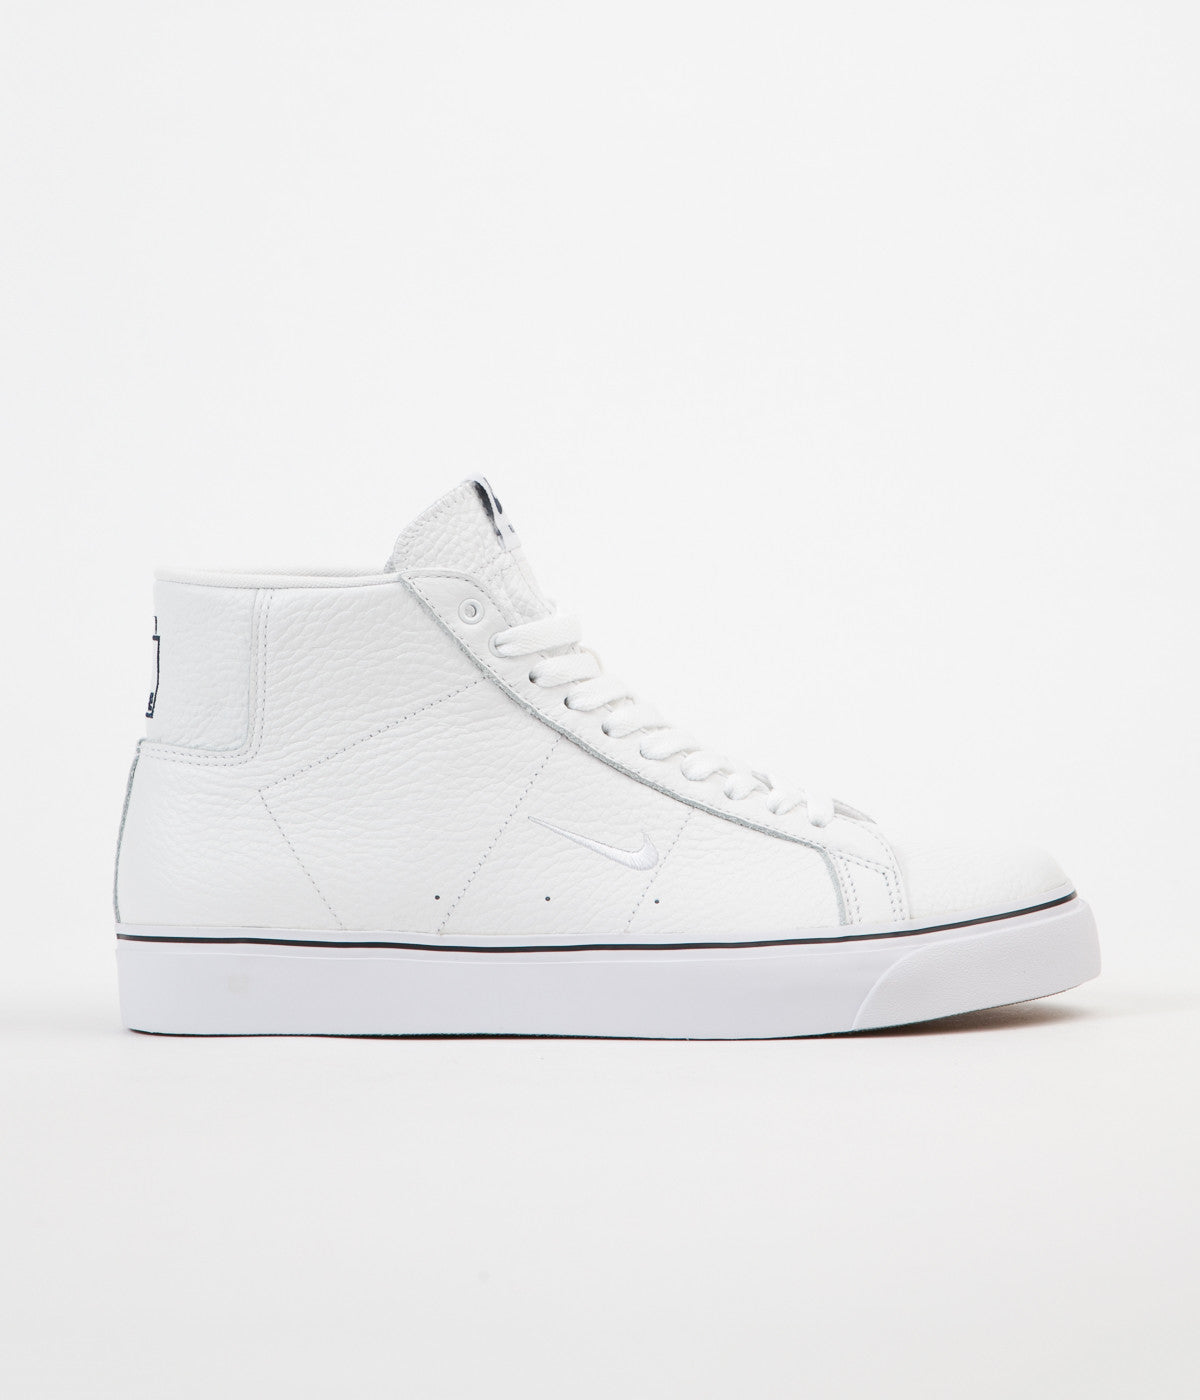 new products 66454 582b6 0bf8b 5890d  official store nike sb blazer mid xt wknd shoes summit white  white midnight 90710 5661b